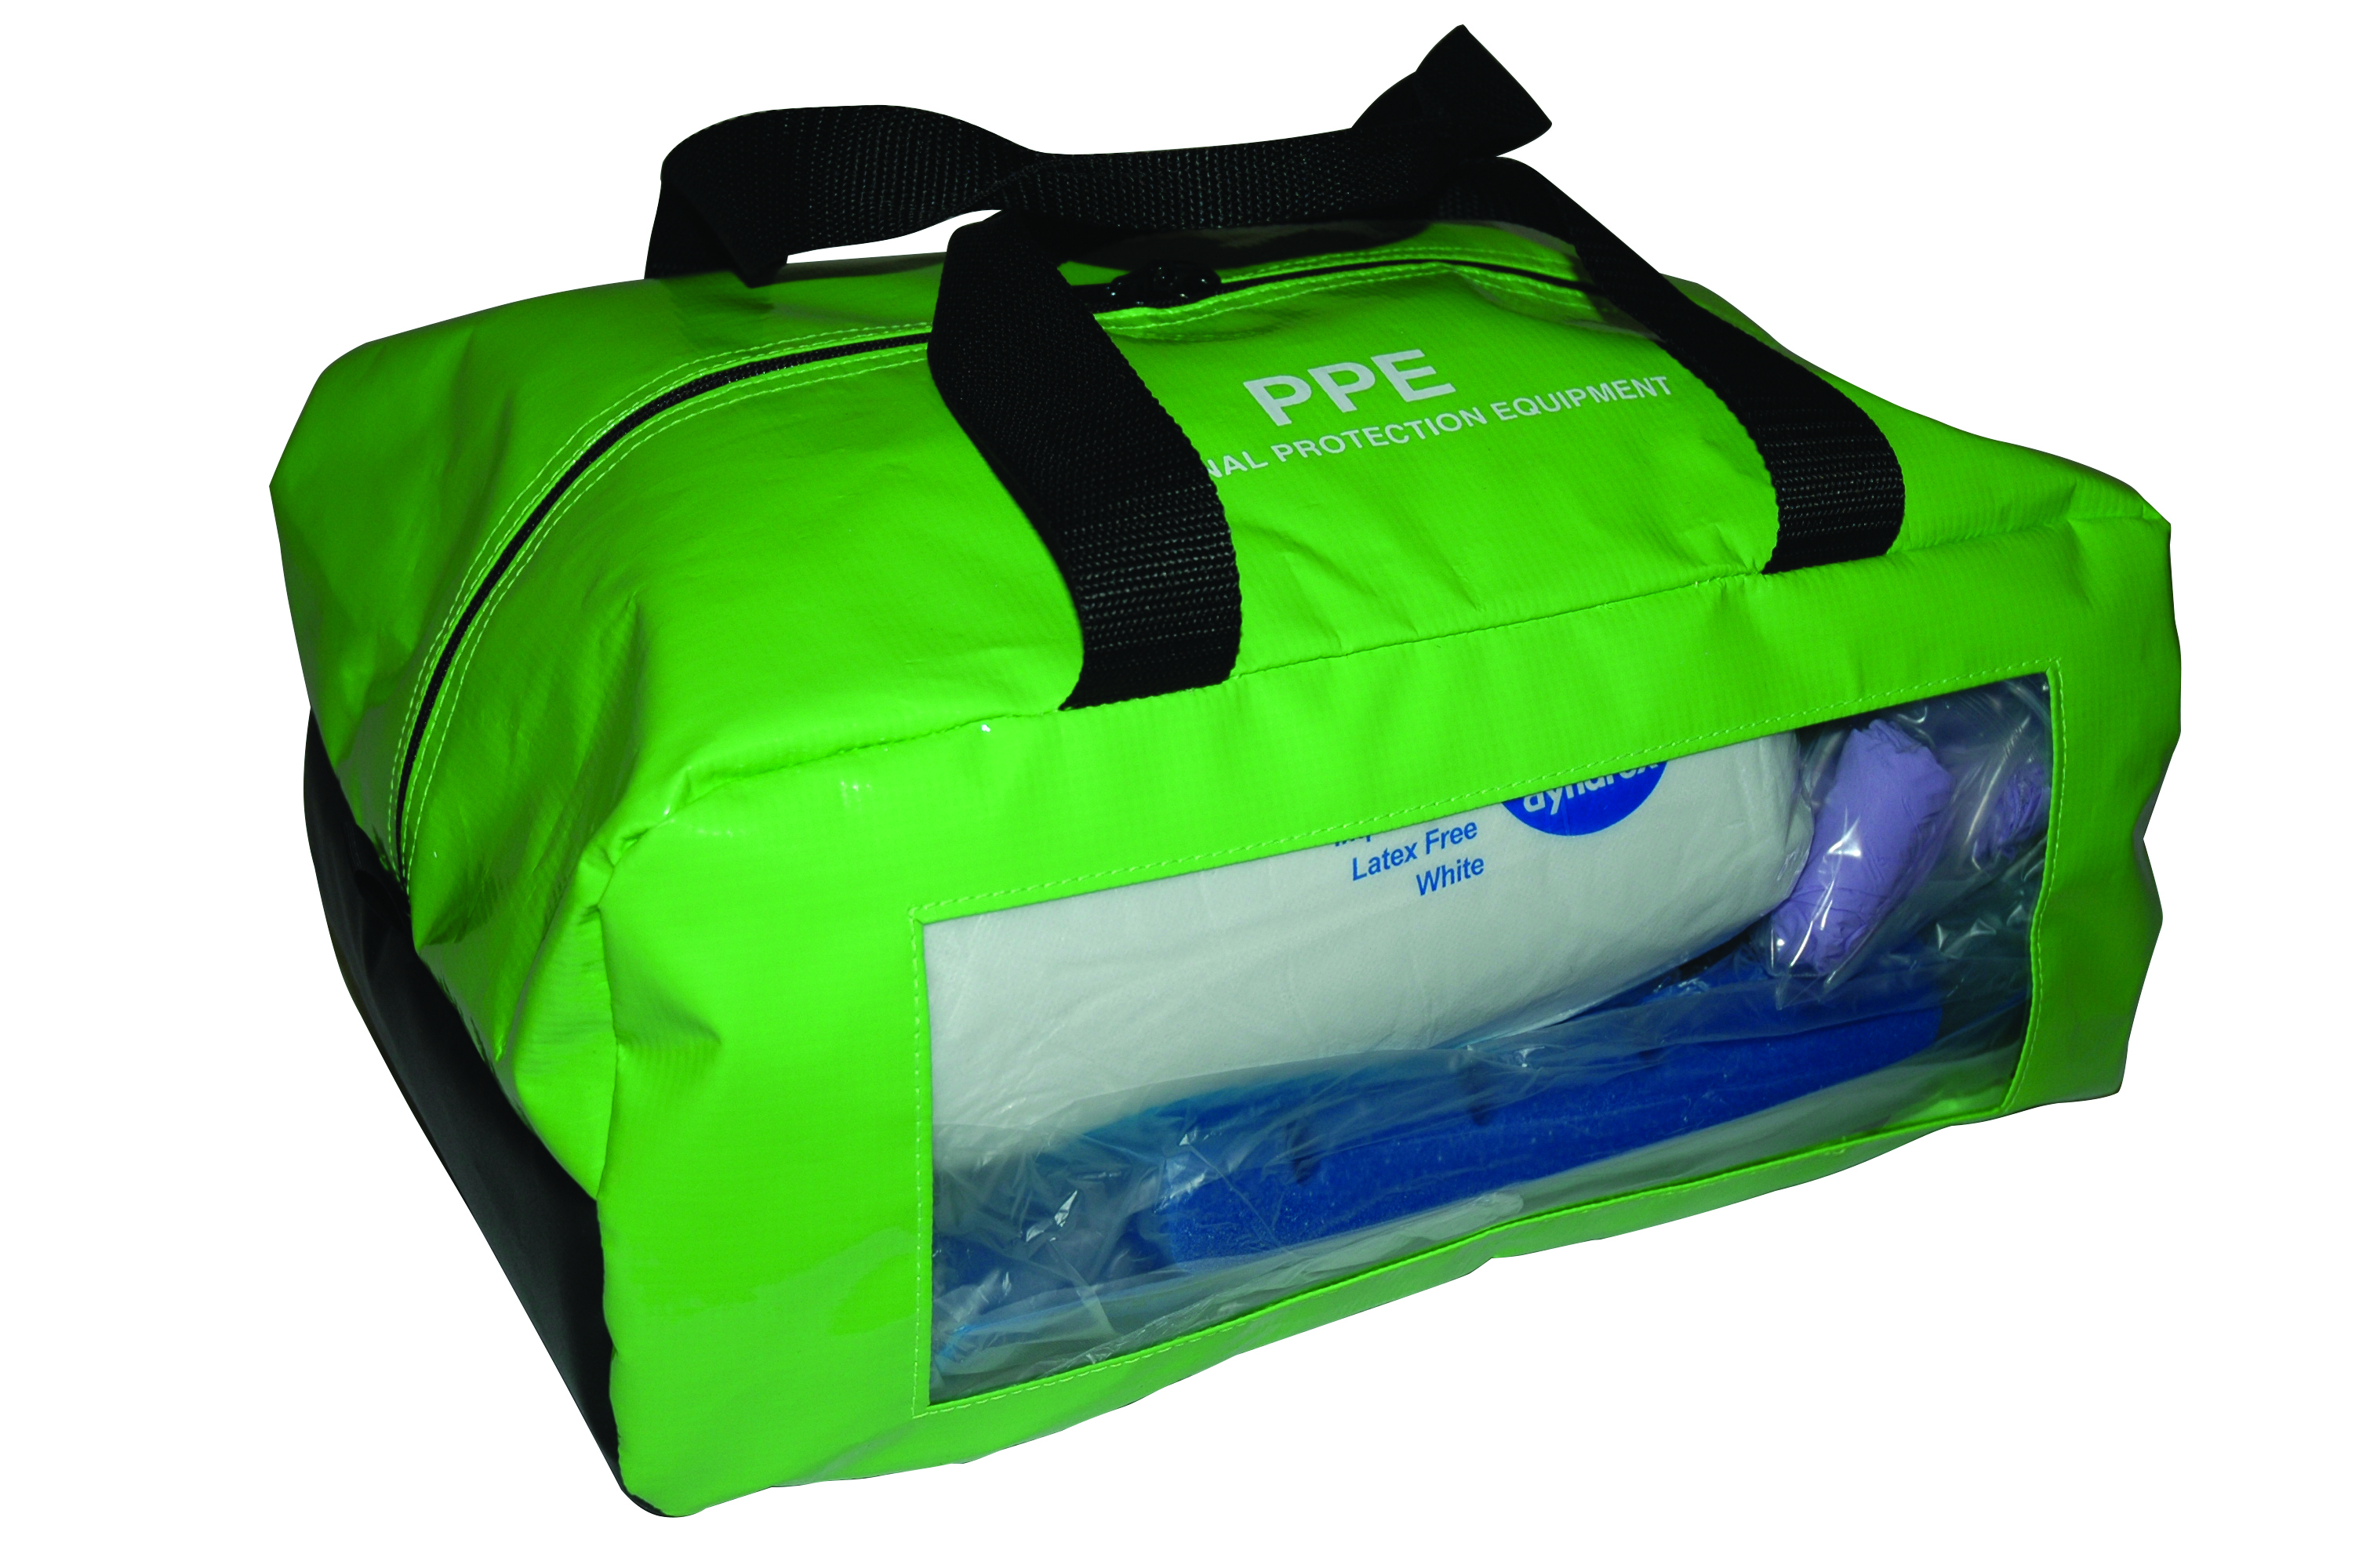 39b1ec4aa EMS and Emergency Medical Products - E-firstaidsupplies.com